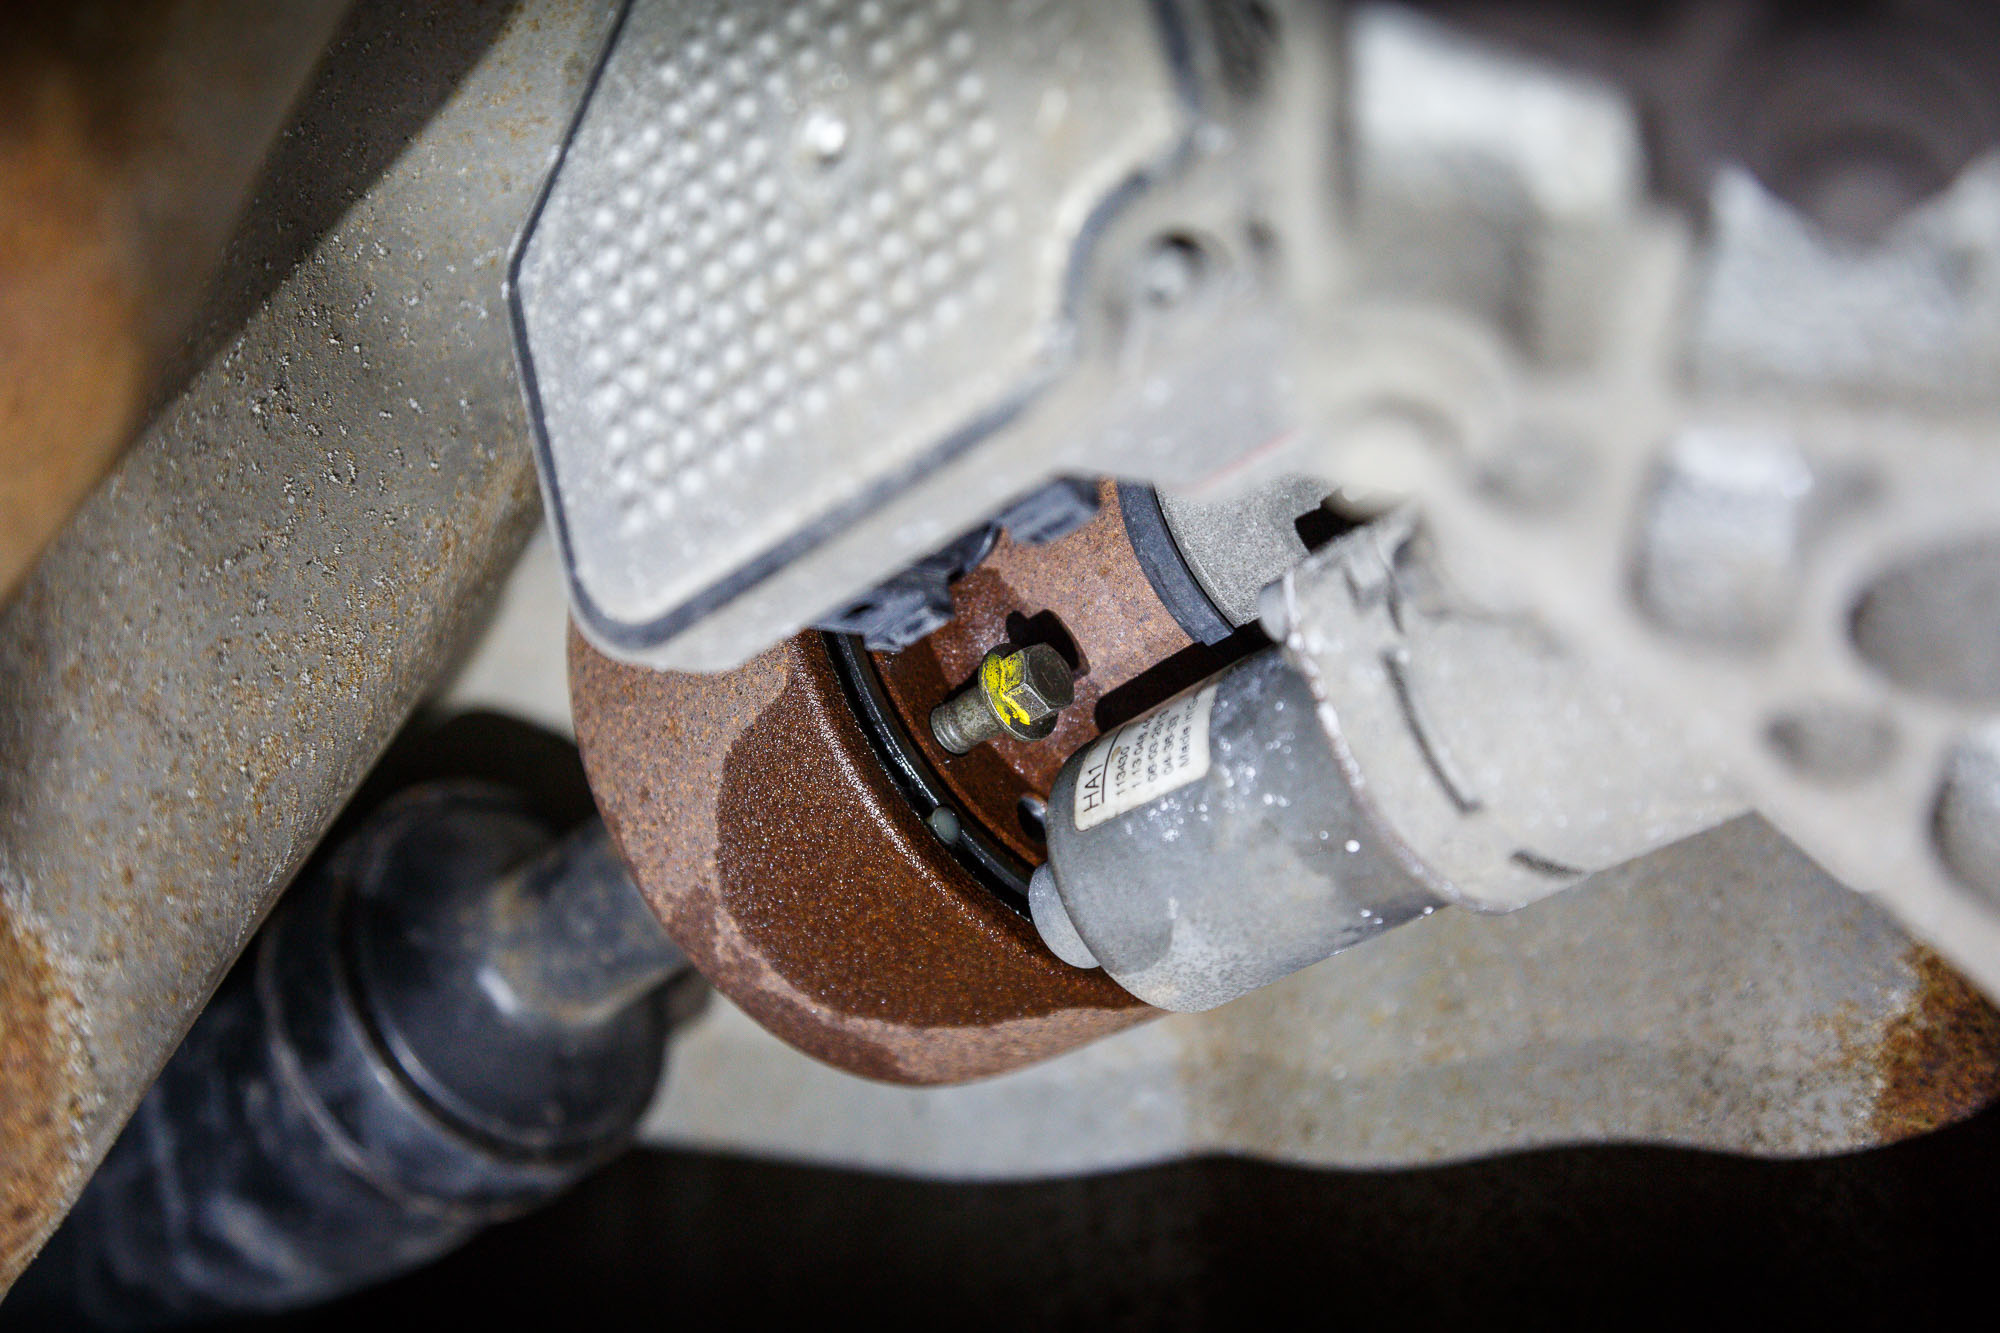 Range Rover Evoque >> Replacing the Prop Shaft on Land Rover Range Rover Evoque